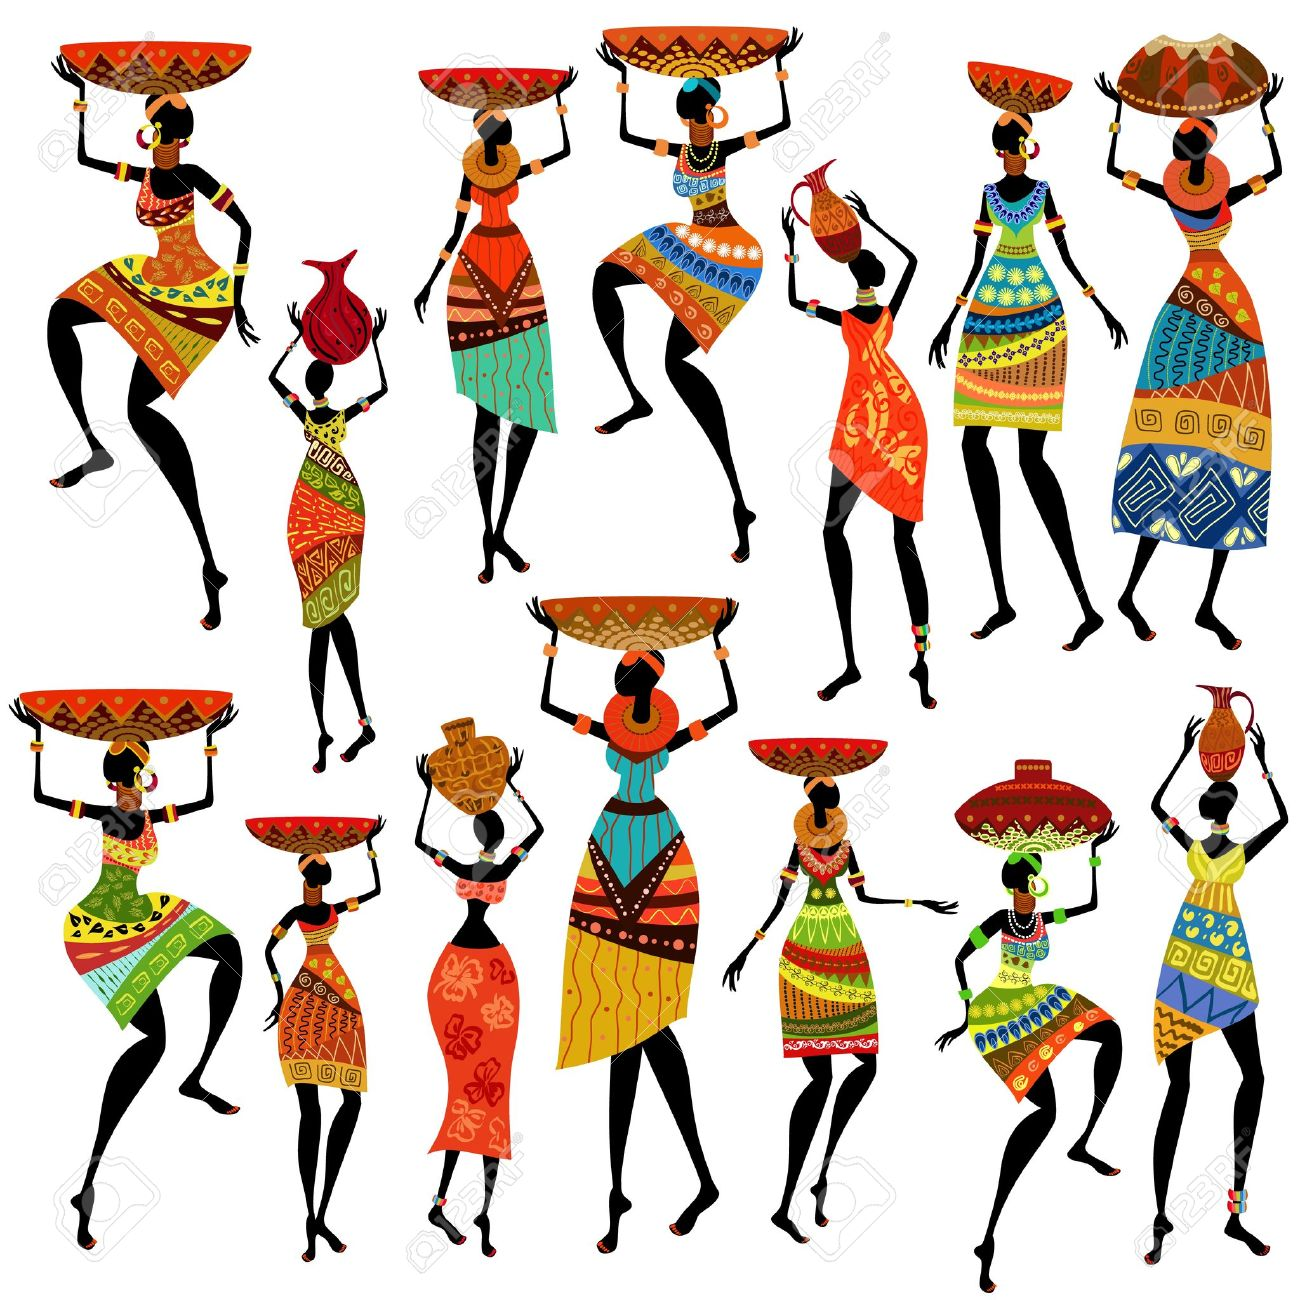 Africa dancing pencil and. African clipart cartoon